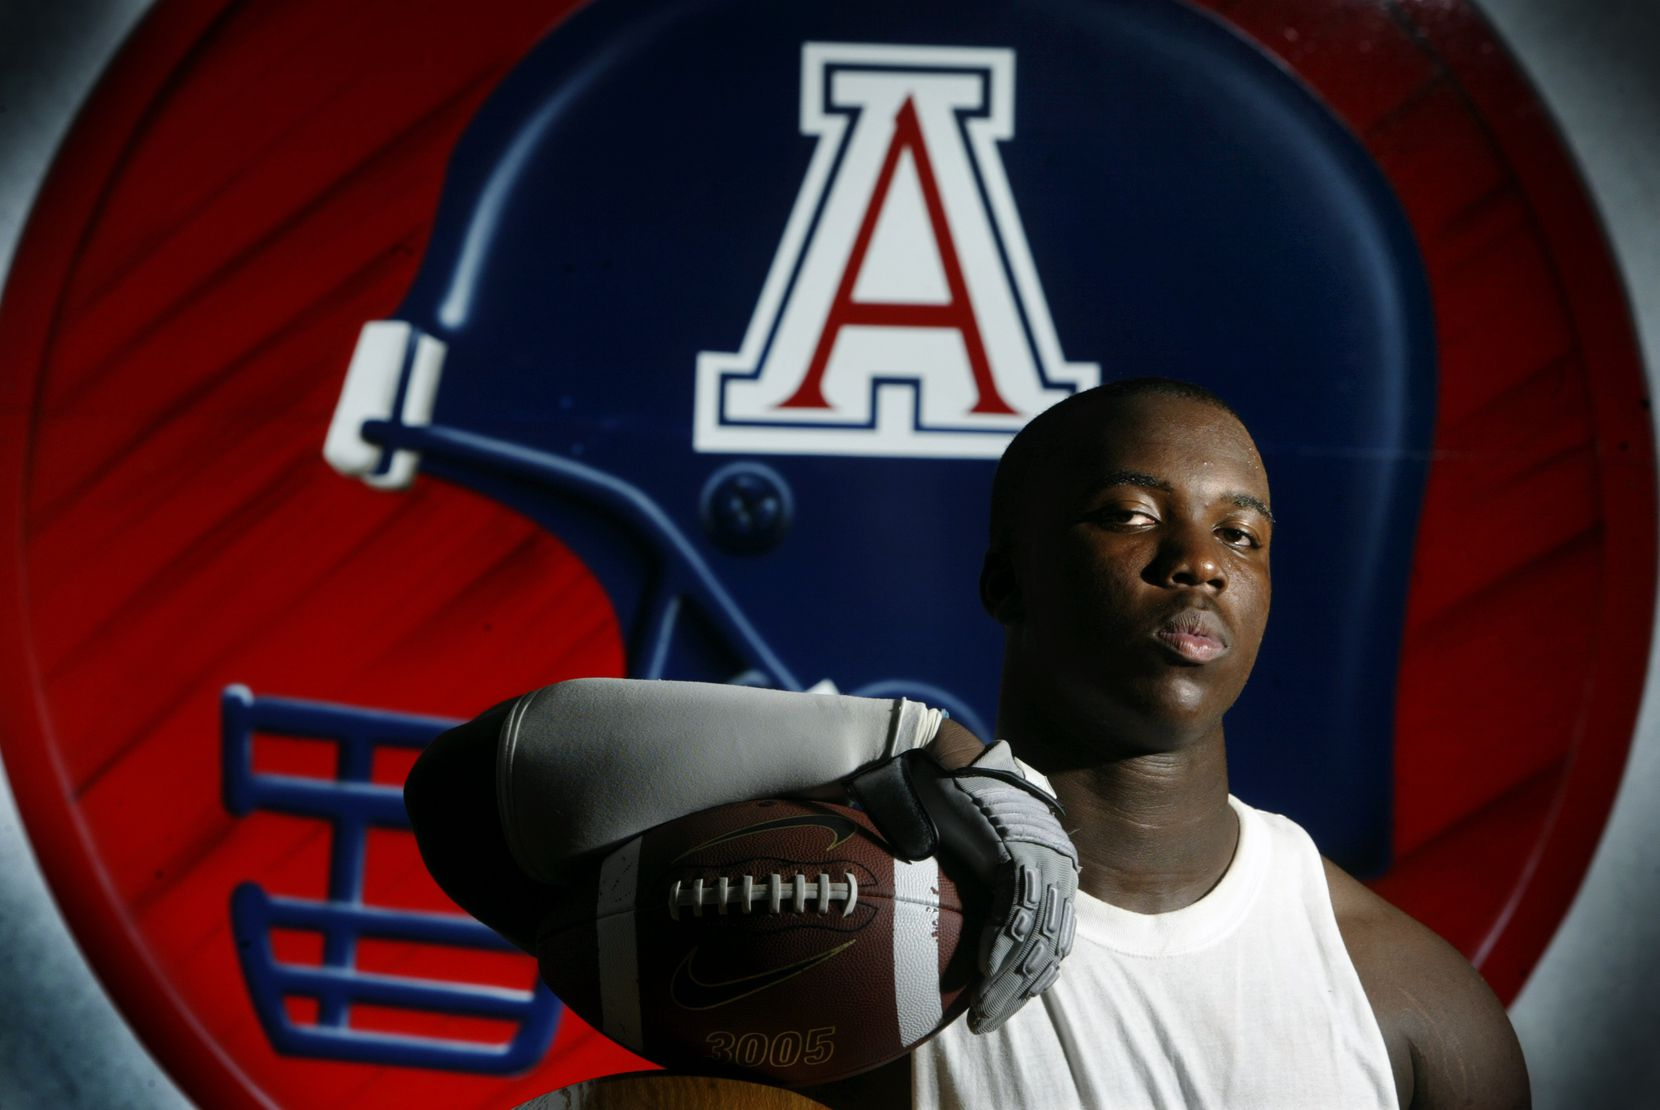 A file photo of Marcus Shavers from 2004. He graduated from Allen High School.